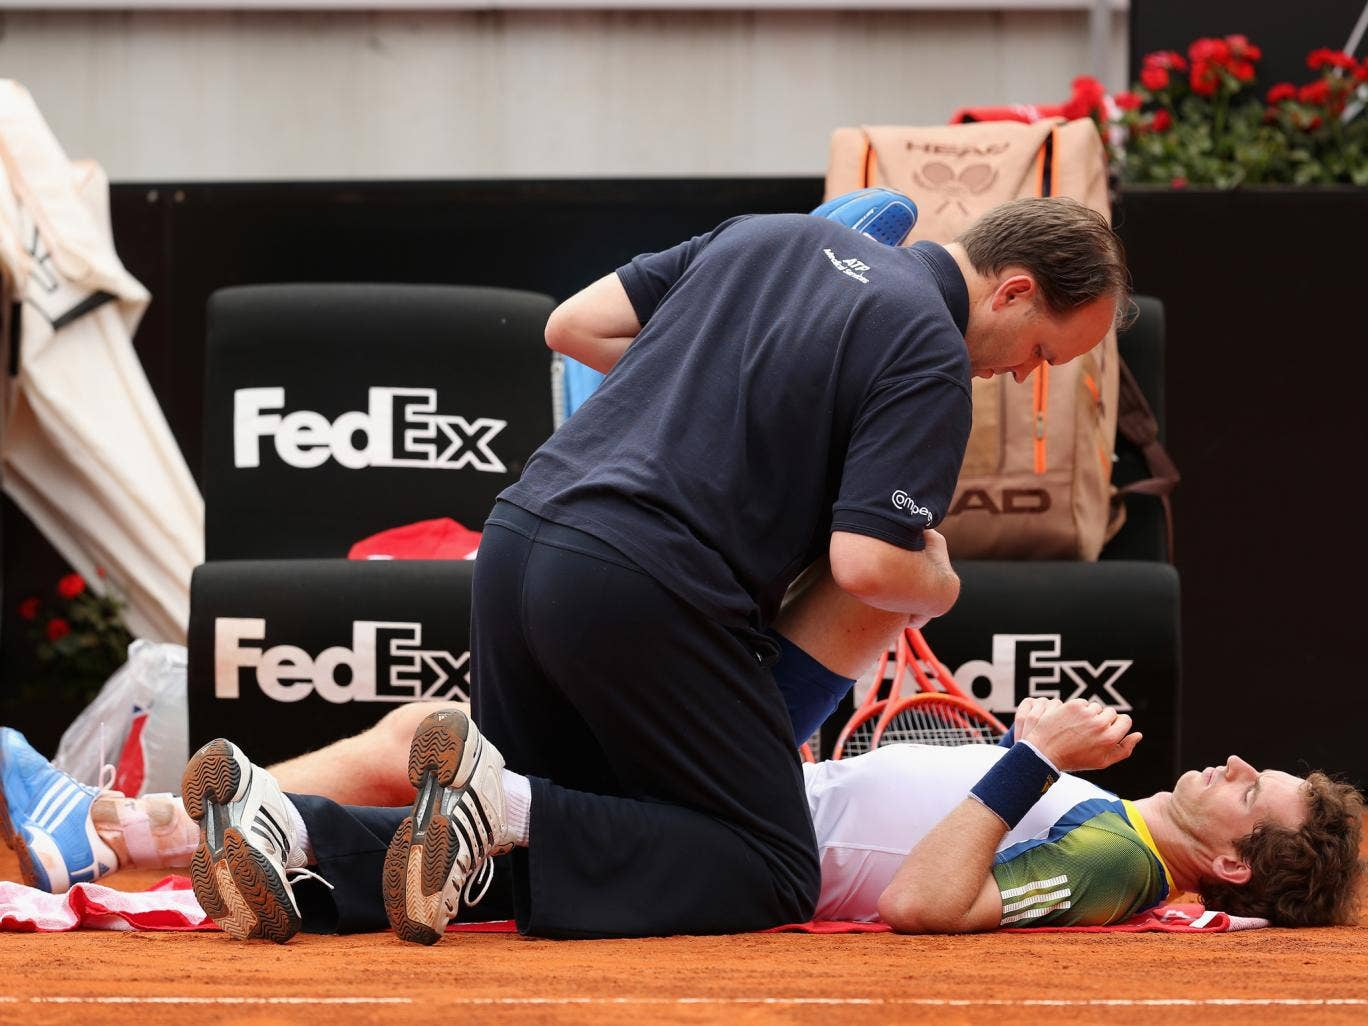 Andy Murray, Rafael Nadal and Novak Djokovic have all suffered lengthy injury absences over the last 12 months